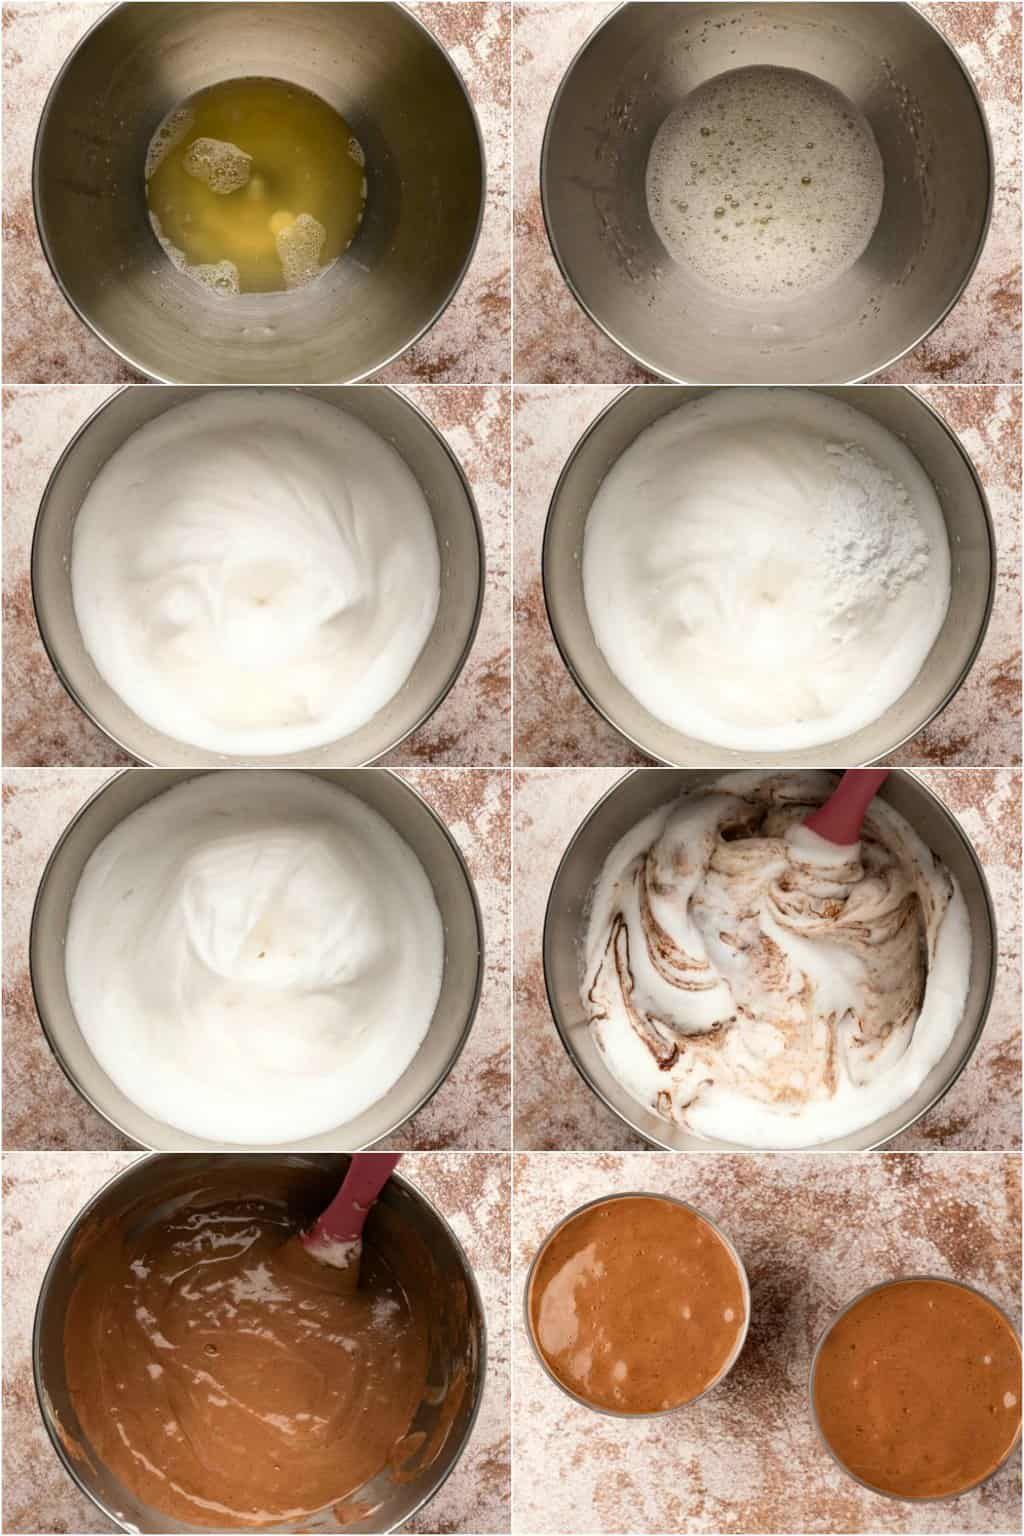 Step by step process photo collage of making vegan mousse with aquafaba.